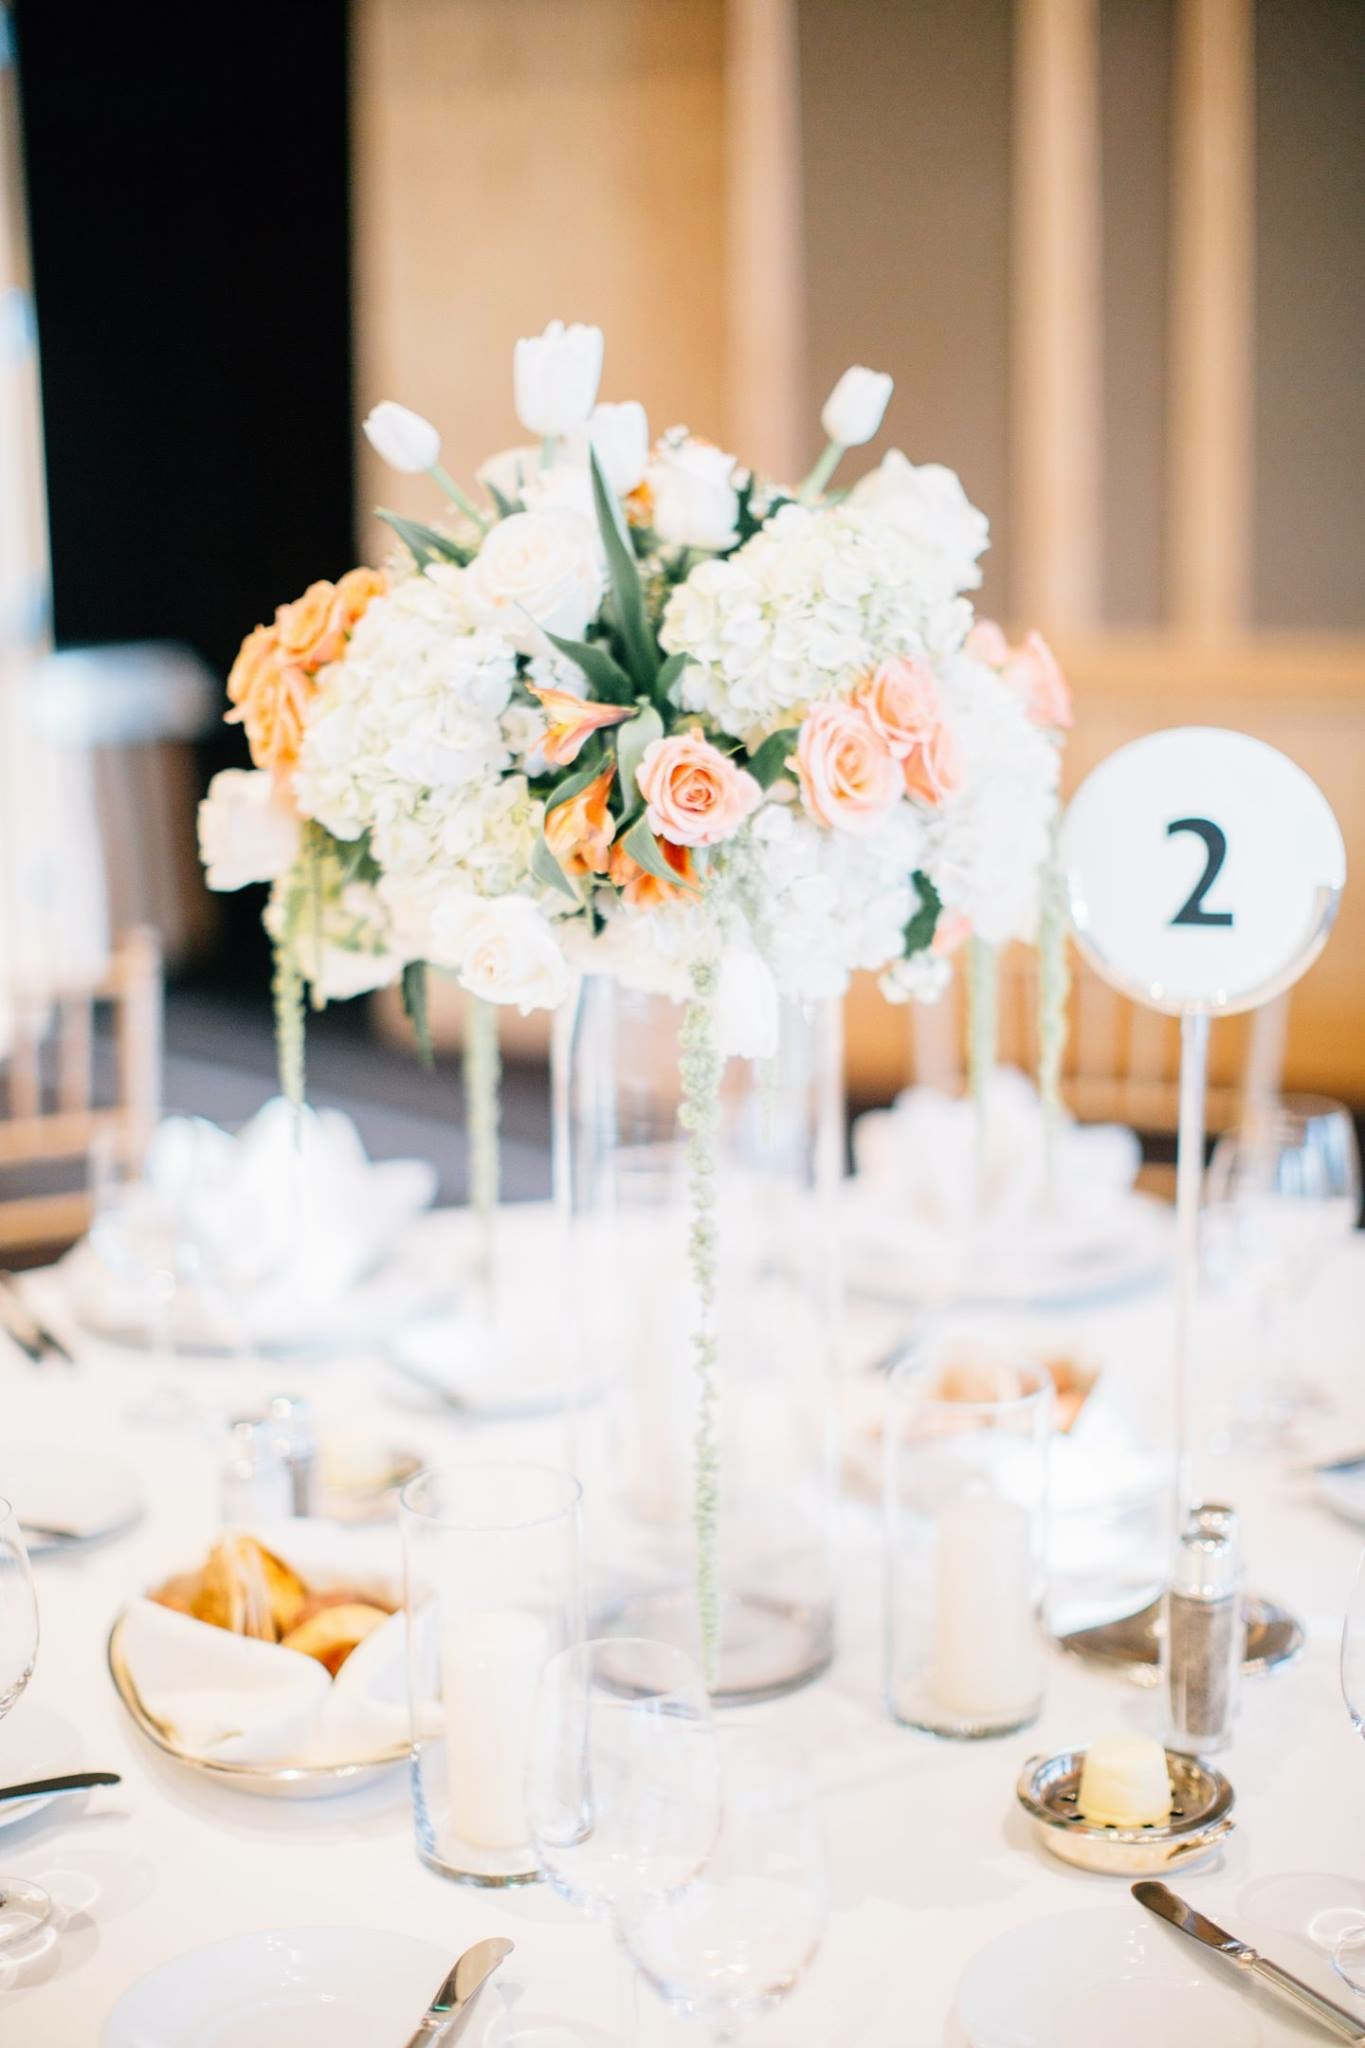 We made sure to position the taller of the centerpieces in such a way as to allow guests to see each other across the table for better conversation during dinner and dancing. The corsages were wristlets worn by the important women in the couple's family.